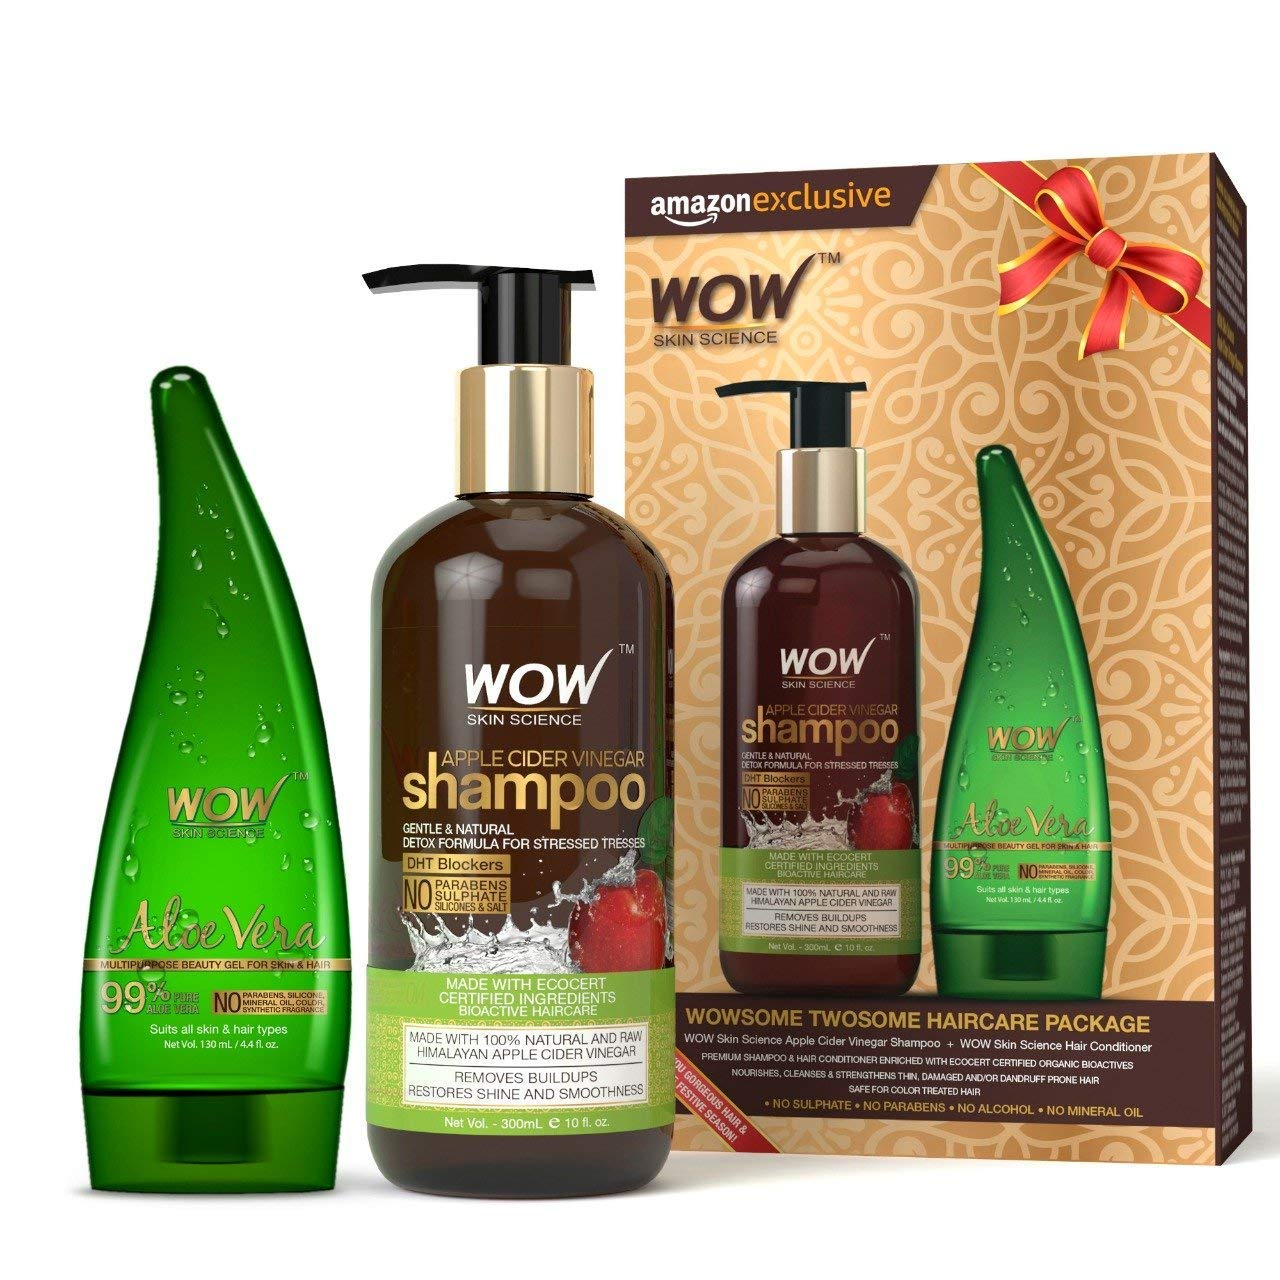 WOW Apple Cider Vinegar Shampoo with WOW 99% Pure Aloe Vera Gel Combo Kit